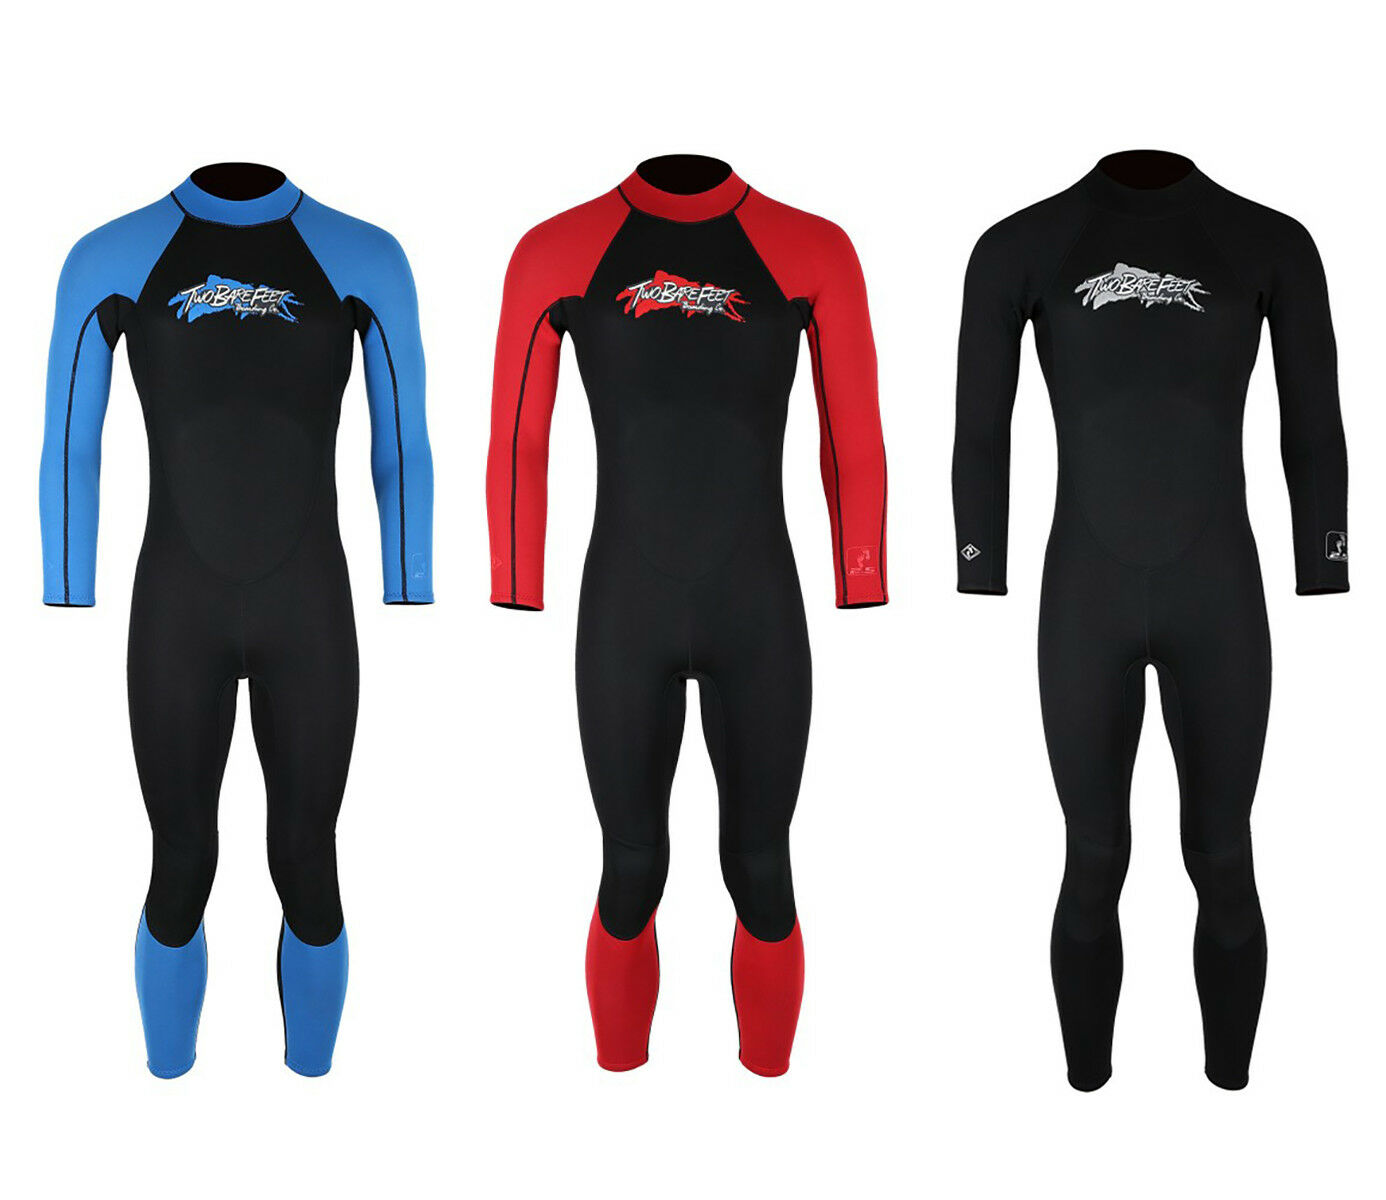 VF ADULT FULL WETSUIT by Two Bare Feet Surf surfing diving TBF VF long